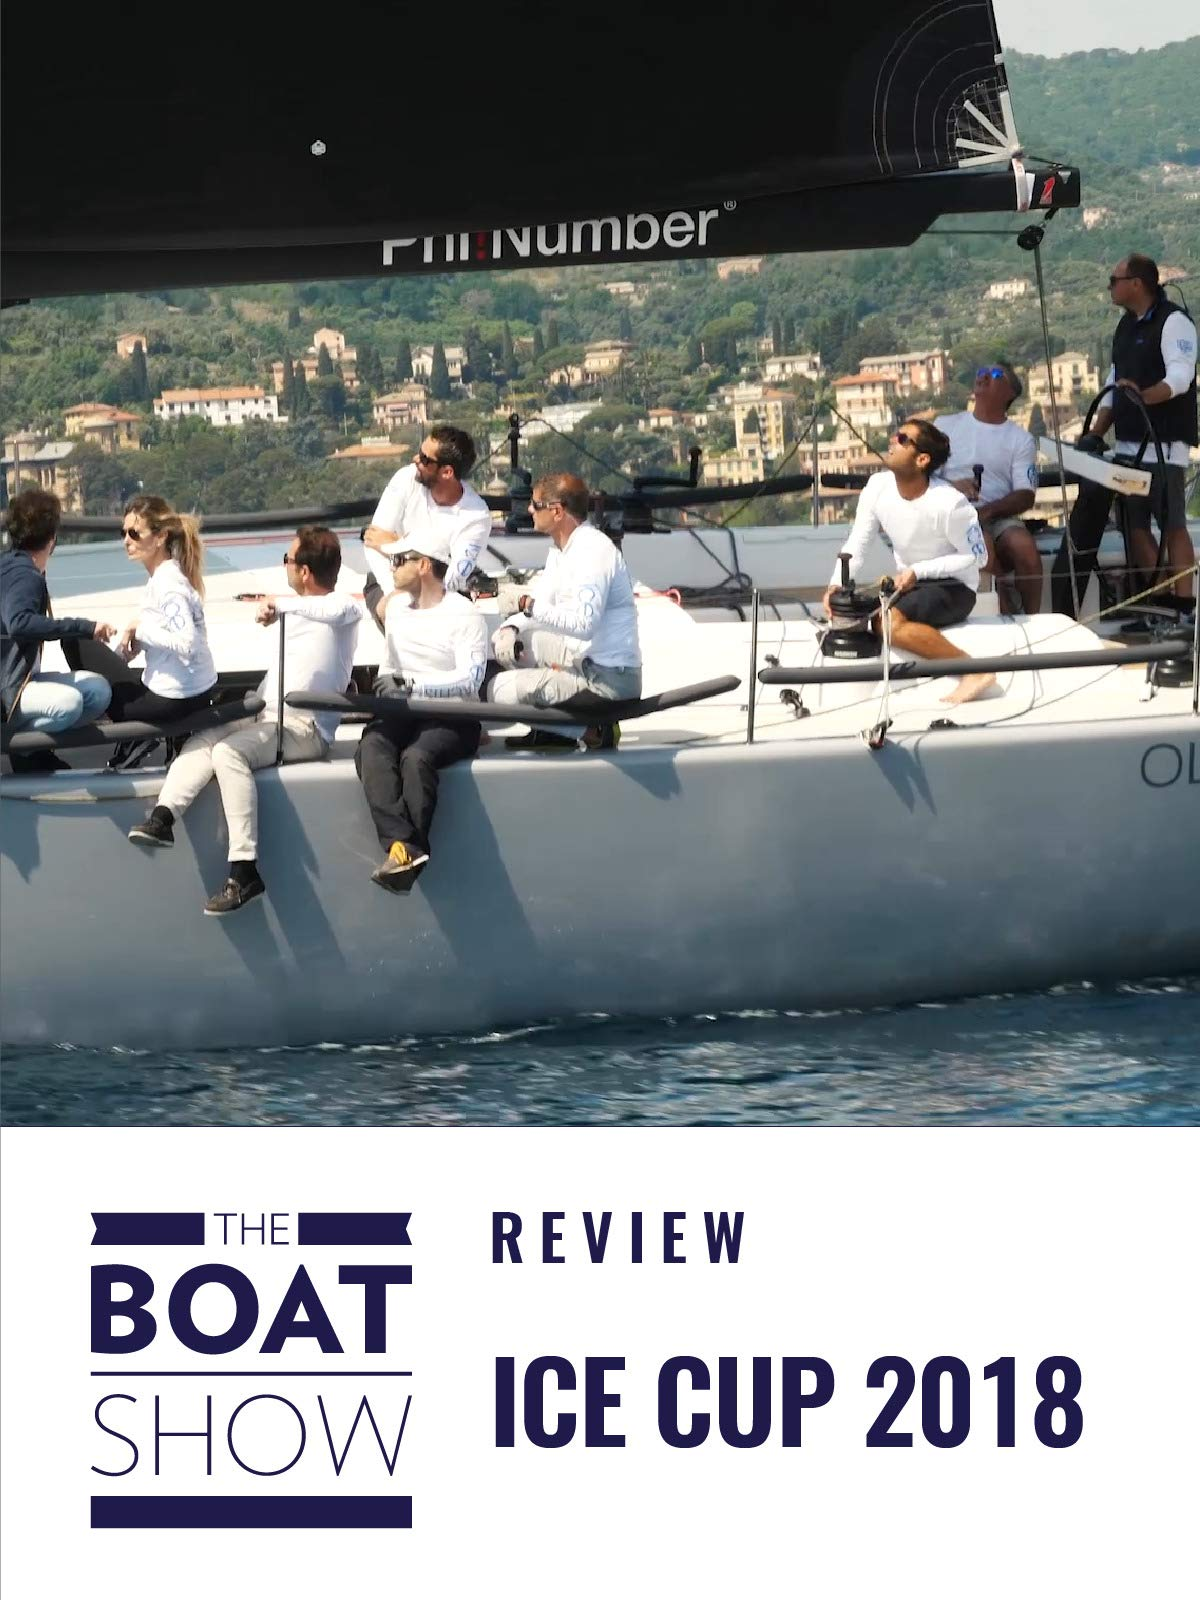 Clip: Ice Cup 2018 - The Boat Show